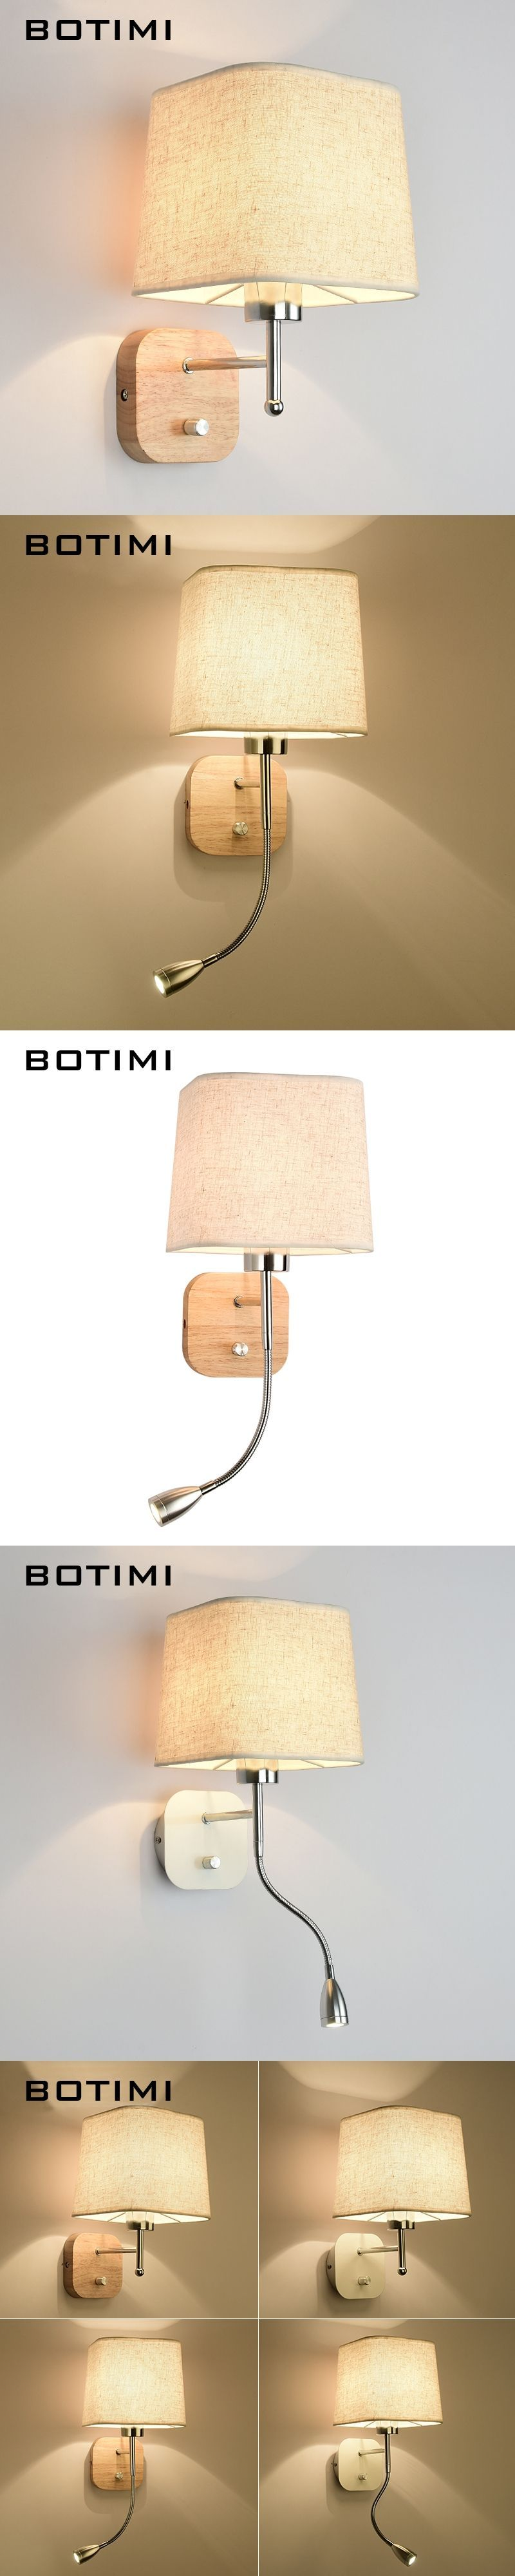 Botimi New Led Wall Lamp For Living Room Hotel Bedside Wall Sconce With Fabric Lampshade E27 Luminaire Bed Reading Home Lighting Led Indoor Wall Lamps Led Lamps